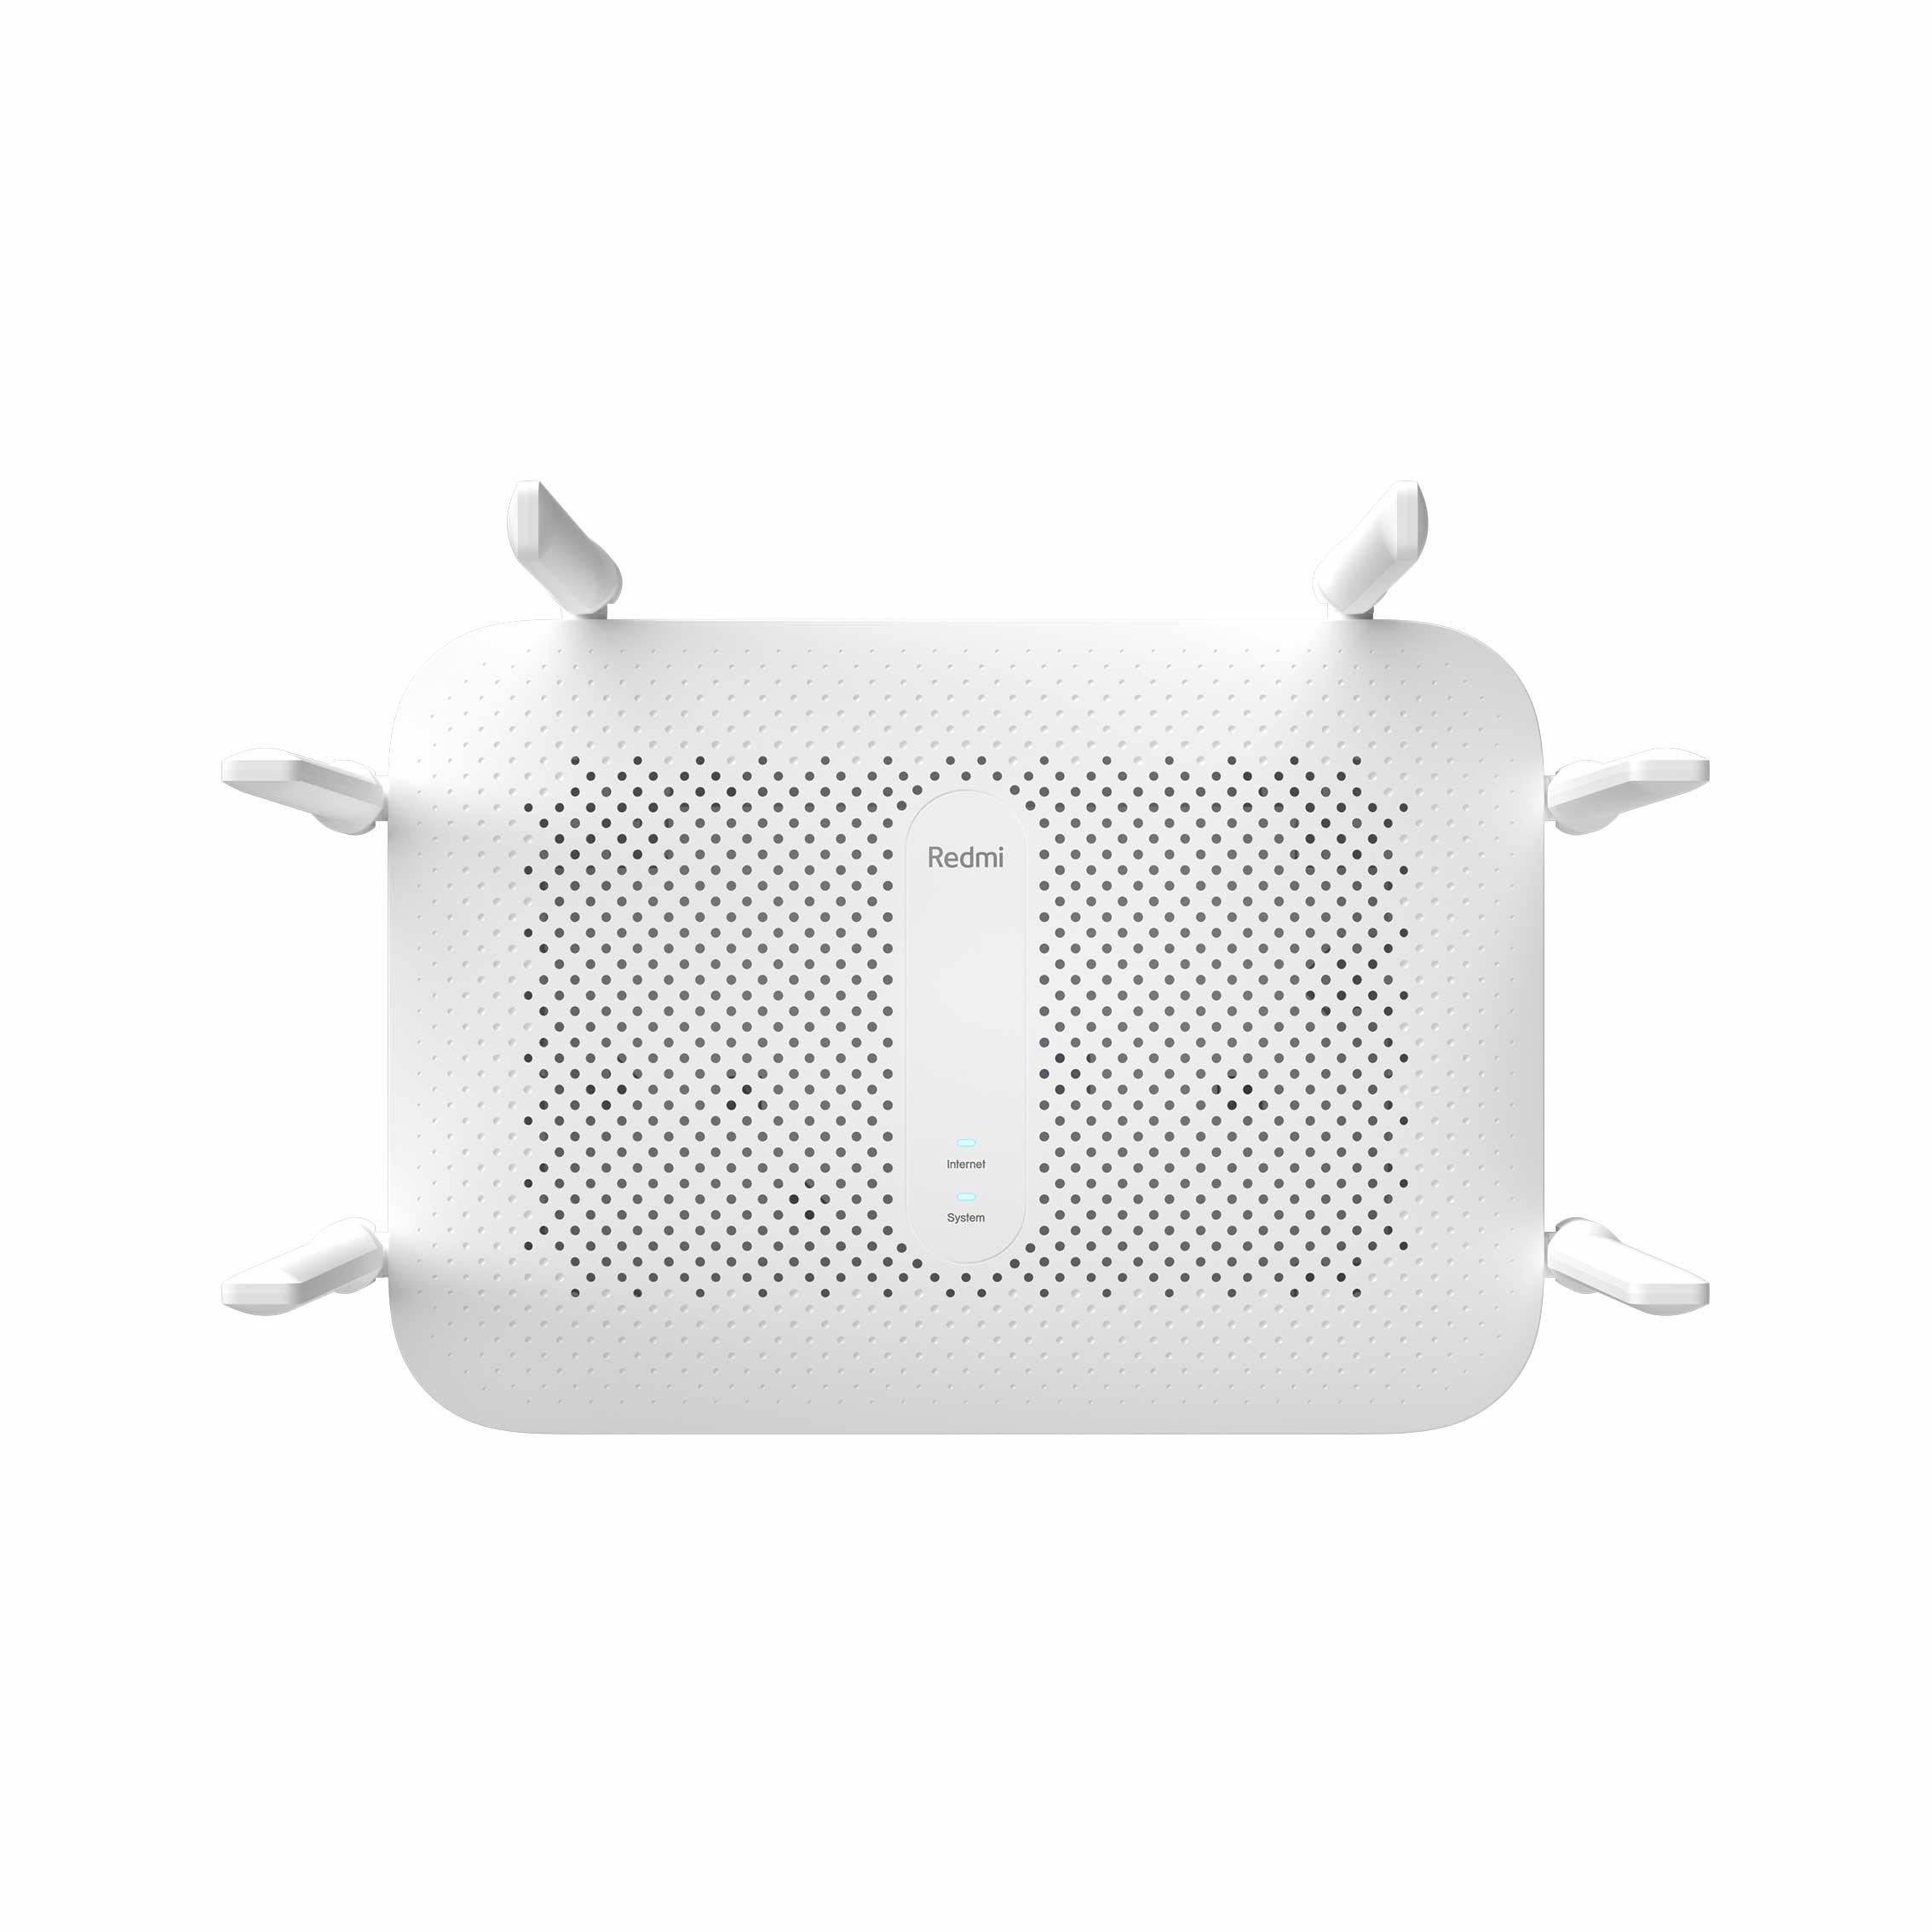 Xiaomi Router AX1800 1775Mbps 5-Core Wi-Fi 6 Wireless Router Dual Band 256MB Support Mesh OFDMA IPv6 WPA3 MU-MIMO - 2